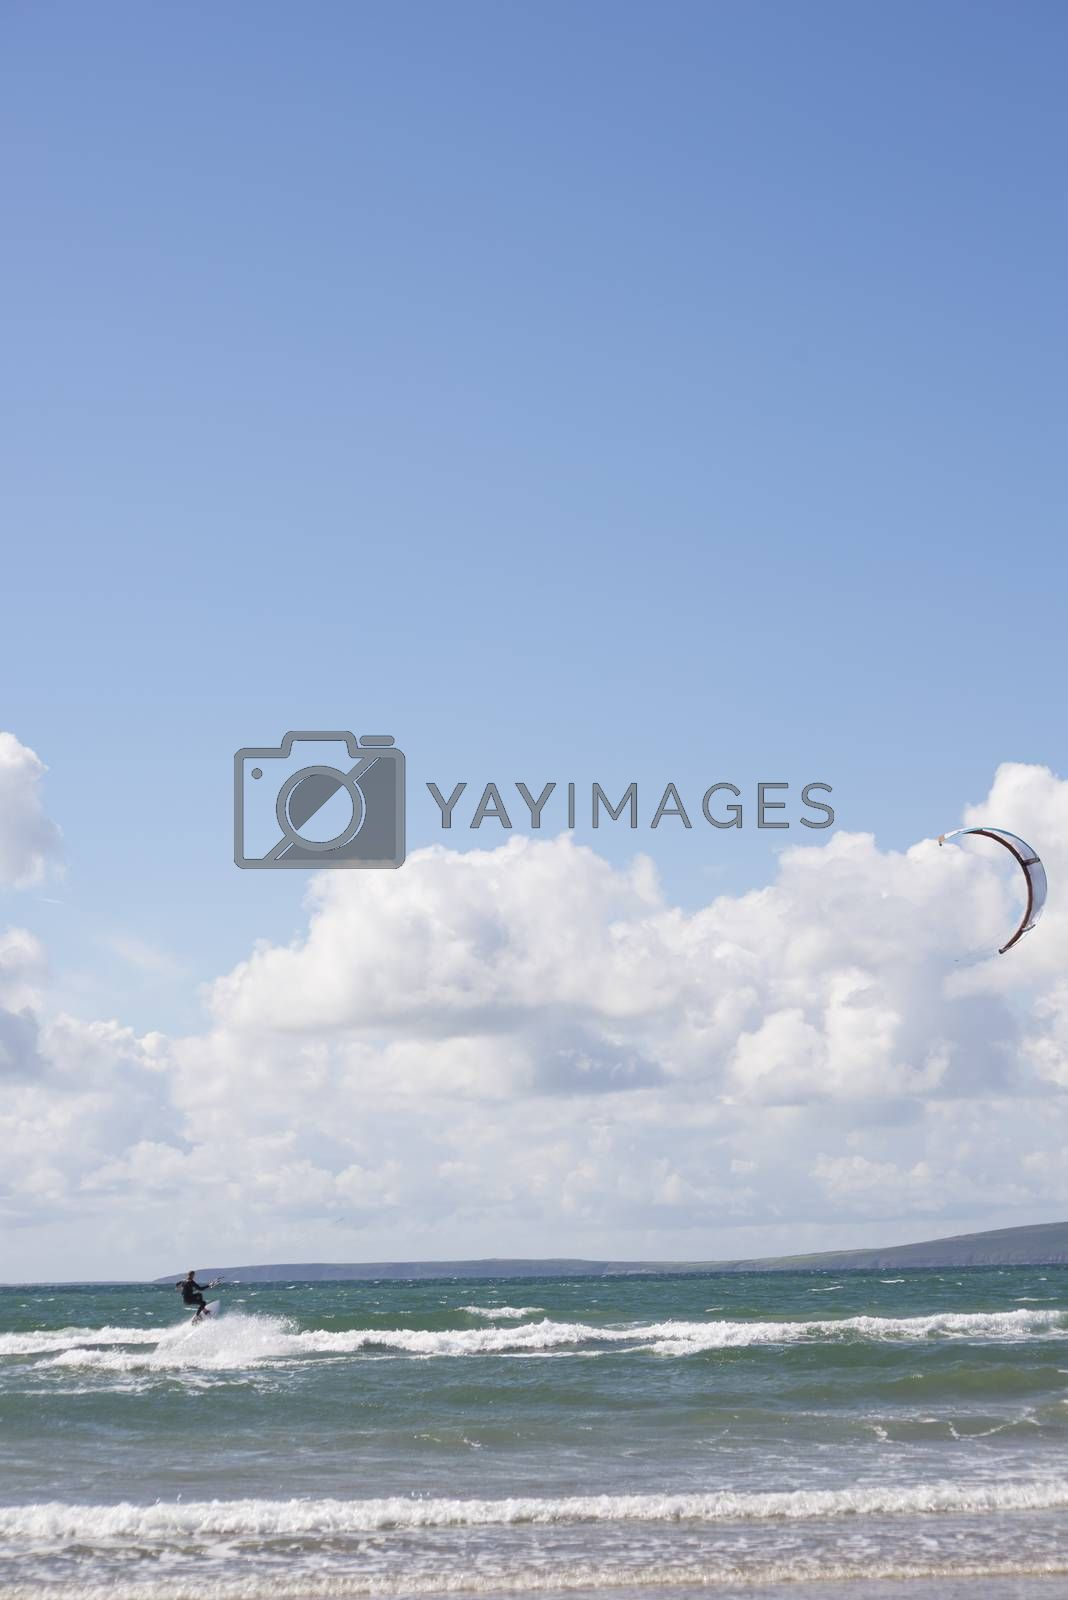 extreme kite surfer on beautiful waves at beach in ballybunion county kerry ireland on the wild atlantic way